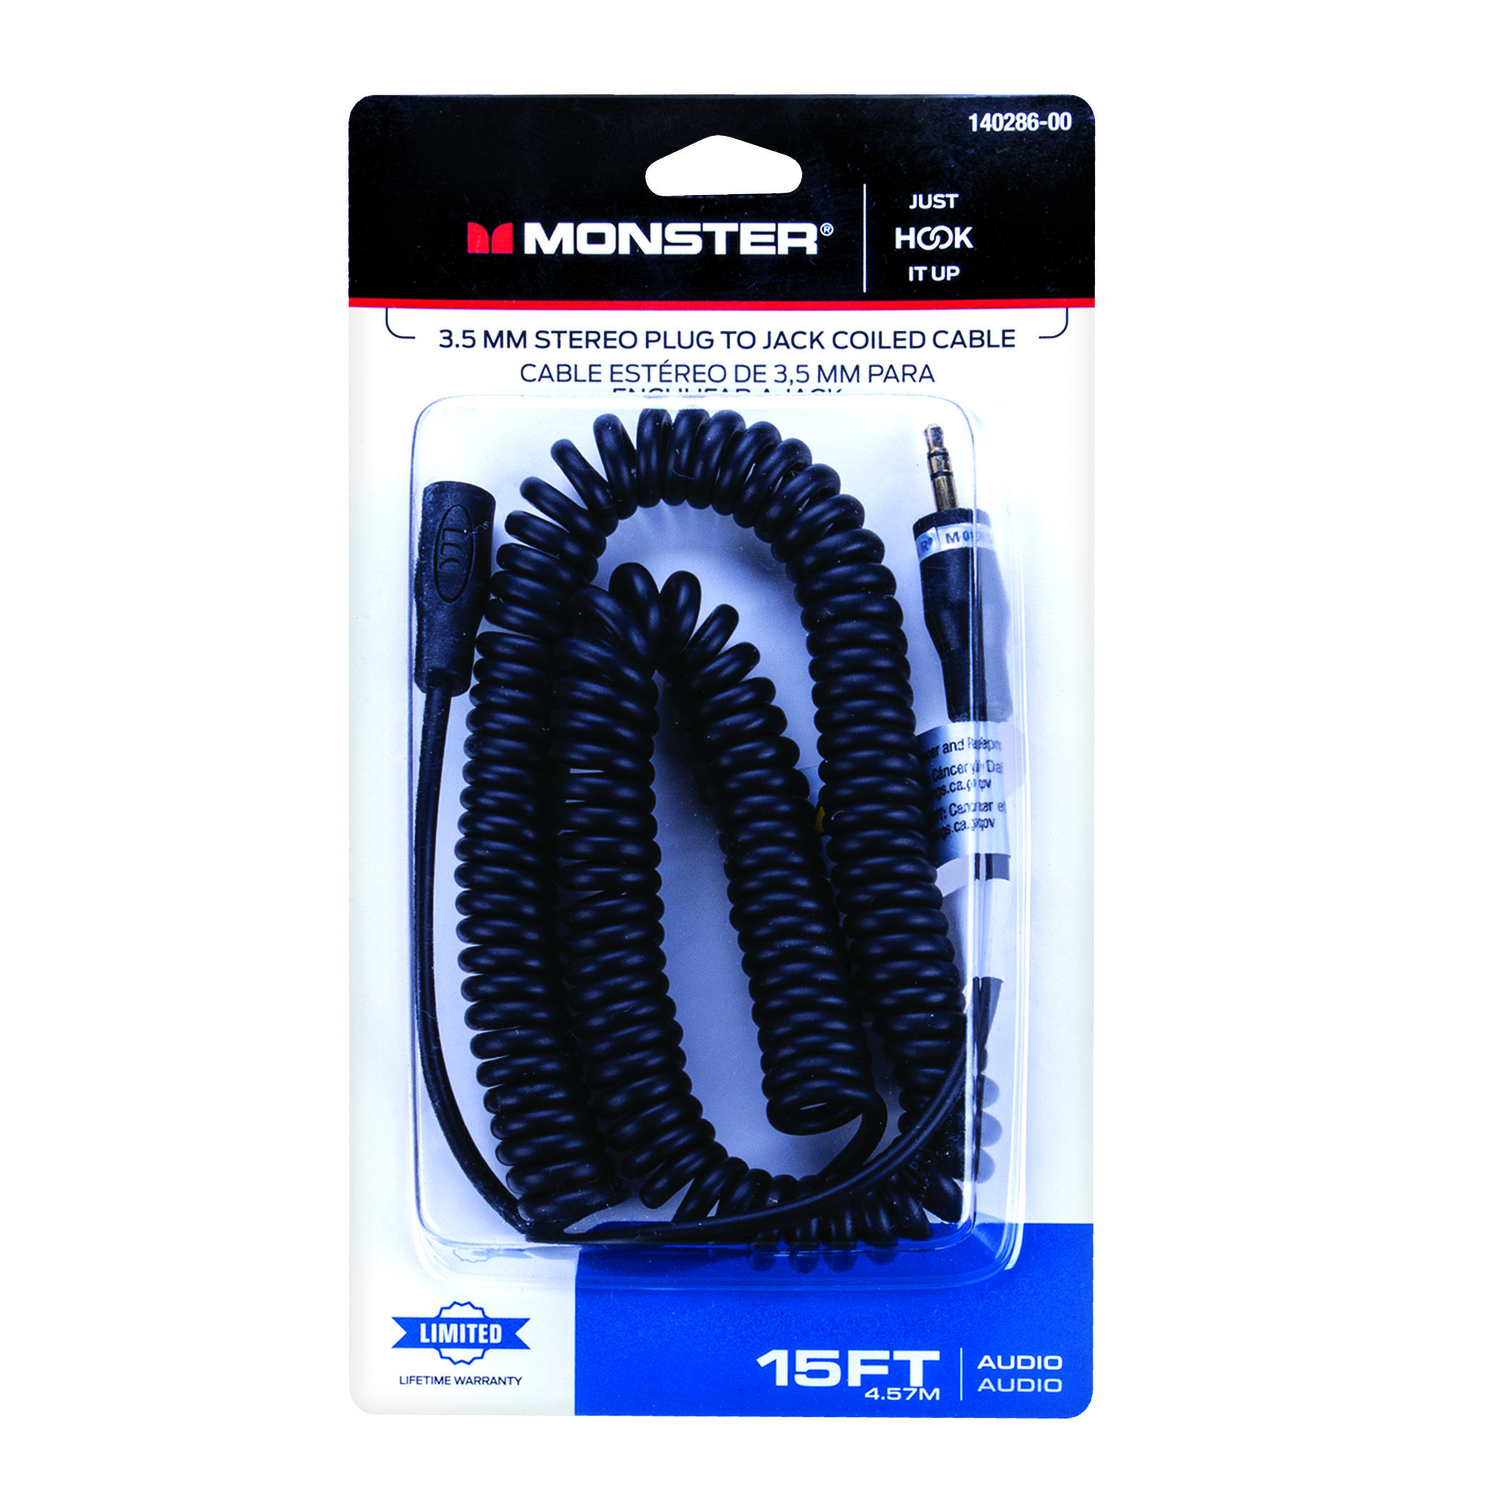 Monster  Just Hook It Up  15 ft. L Stereo Plug Cable  1 pk